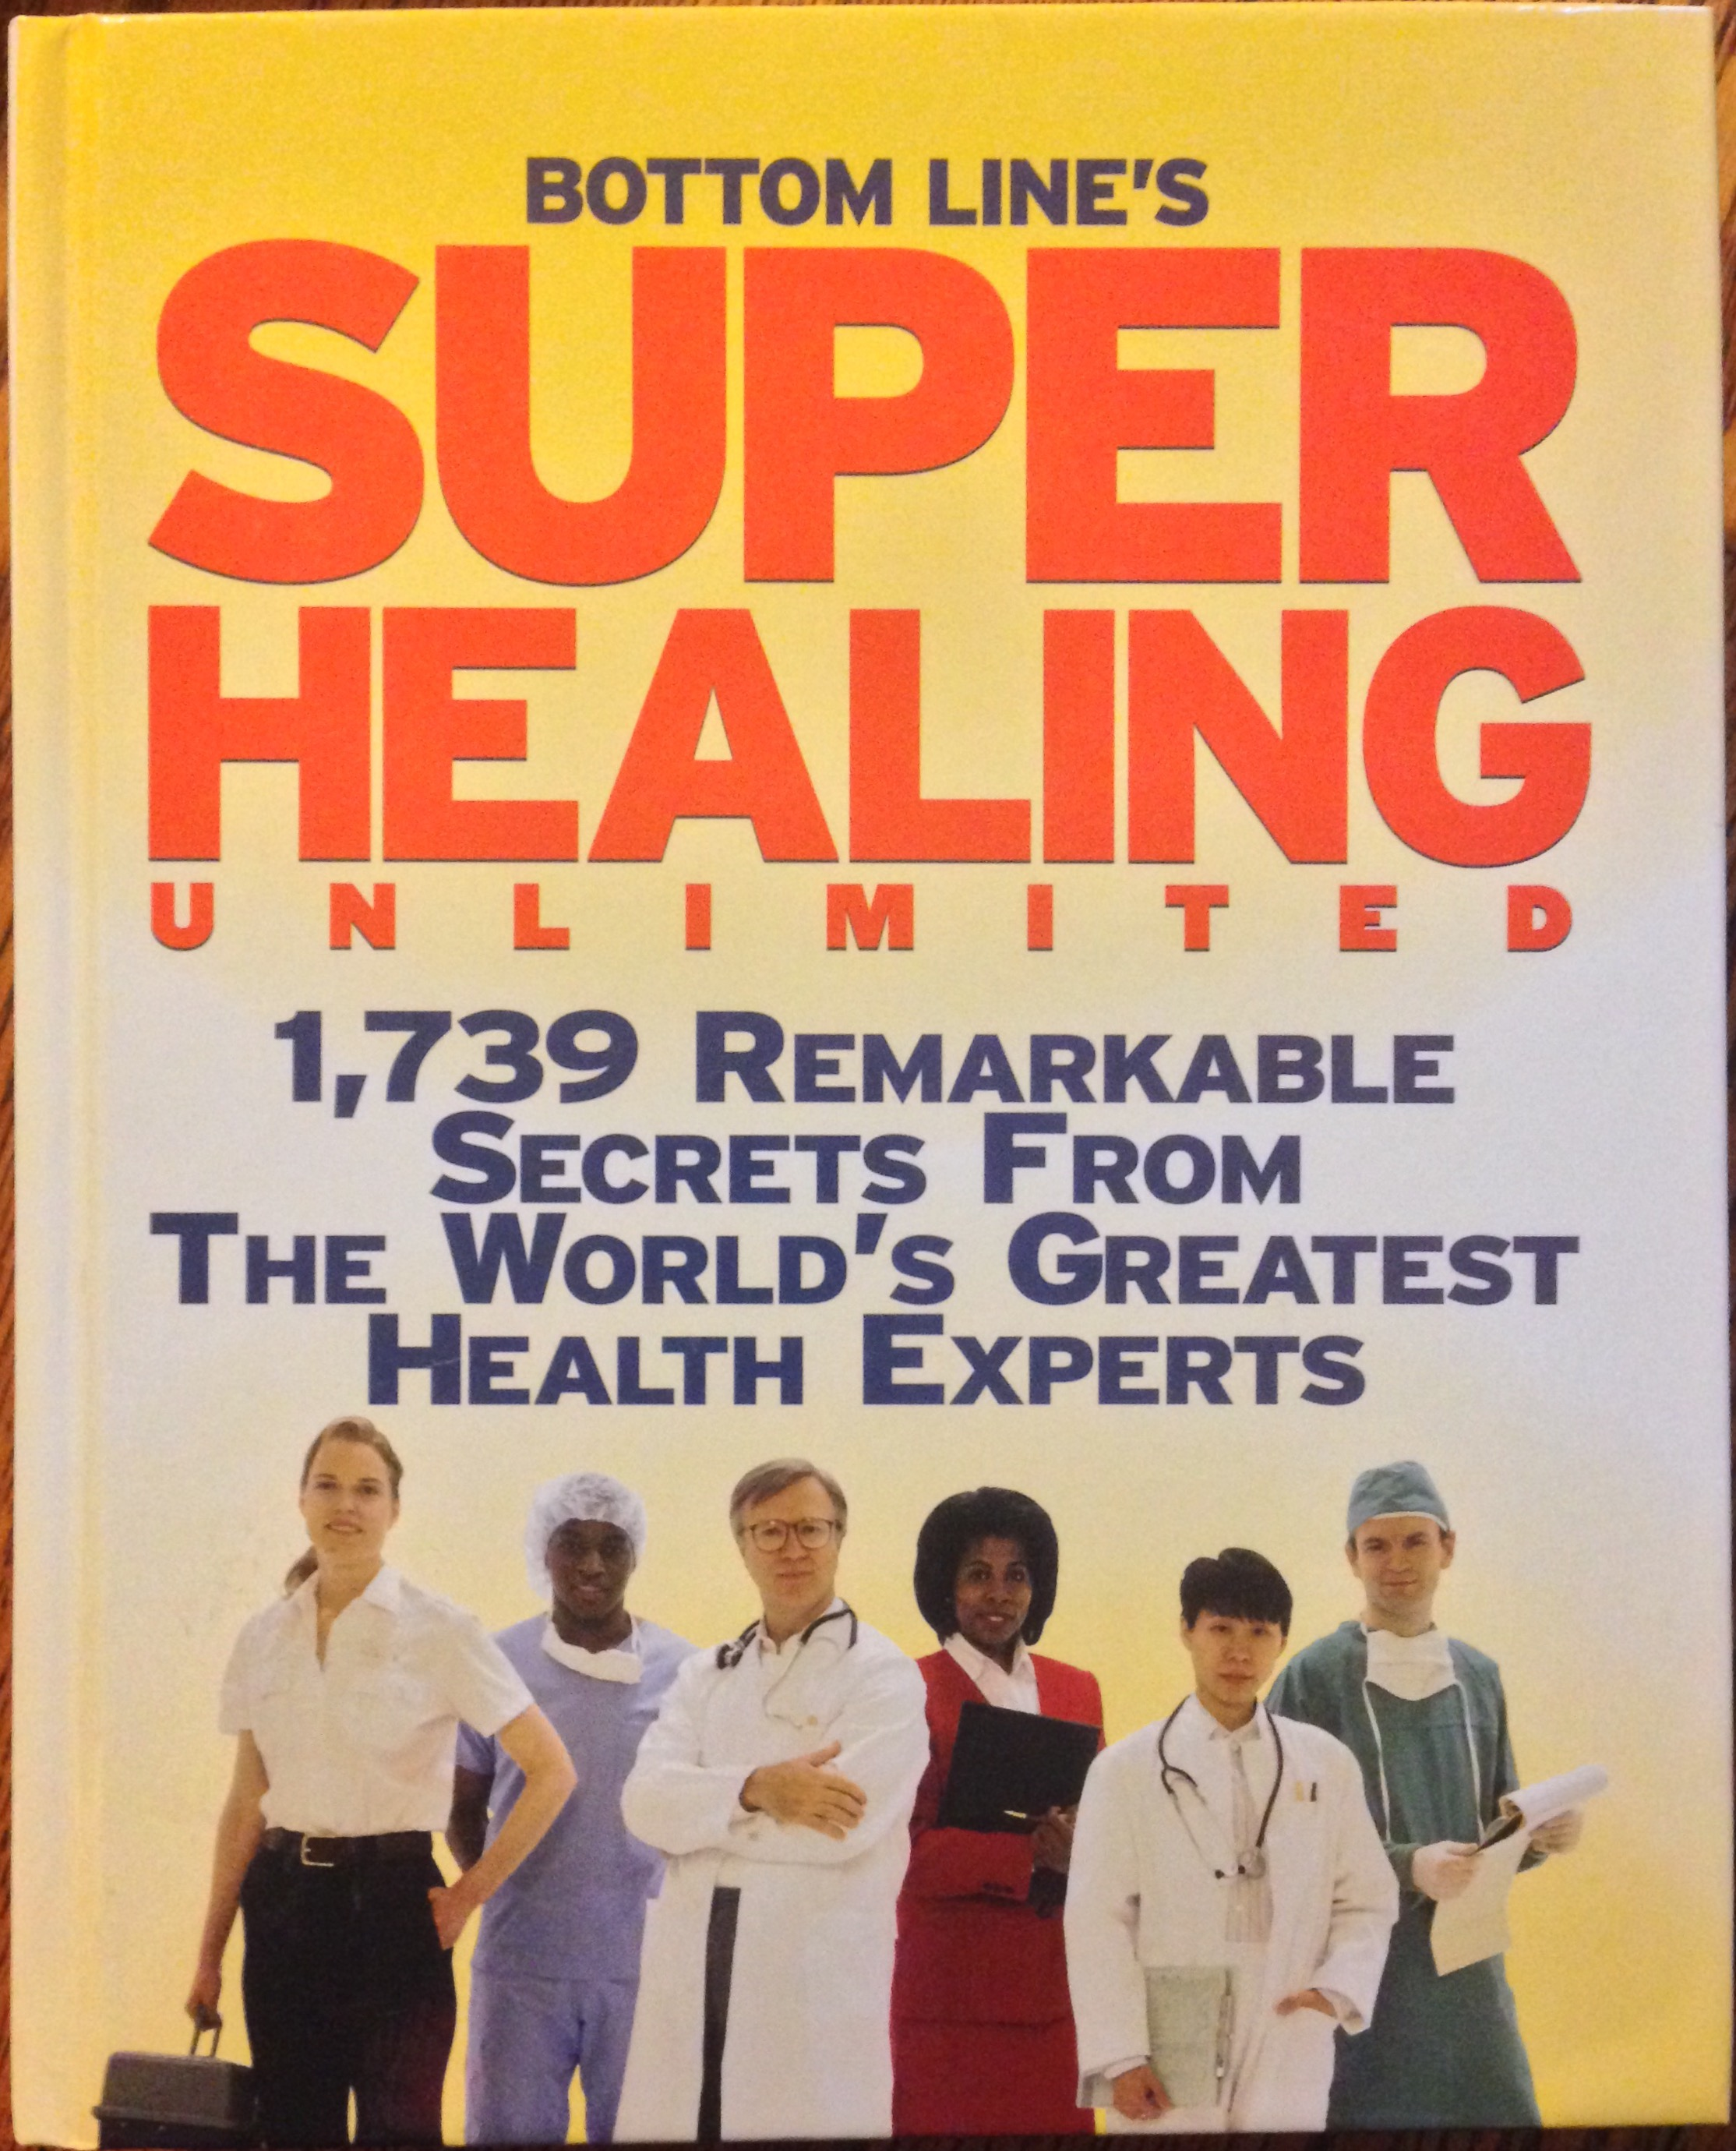 Bottom Line's Super Healing Unlimited: 1,739 Remarkable Secrets from the World's Greatest Health Experts